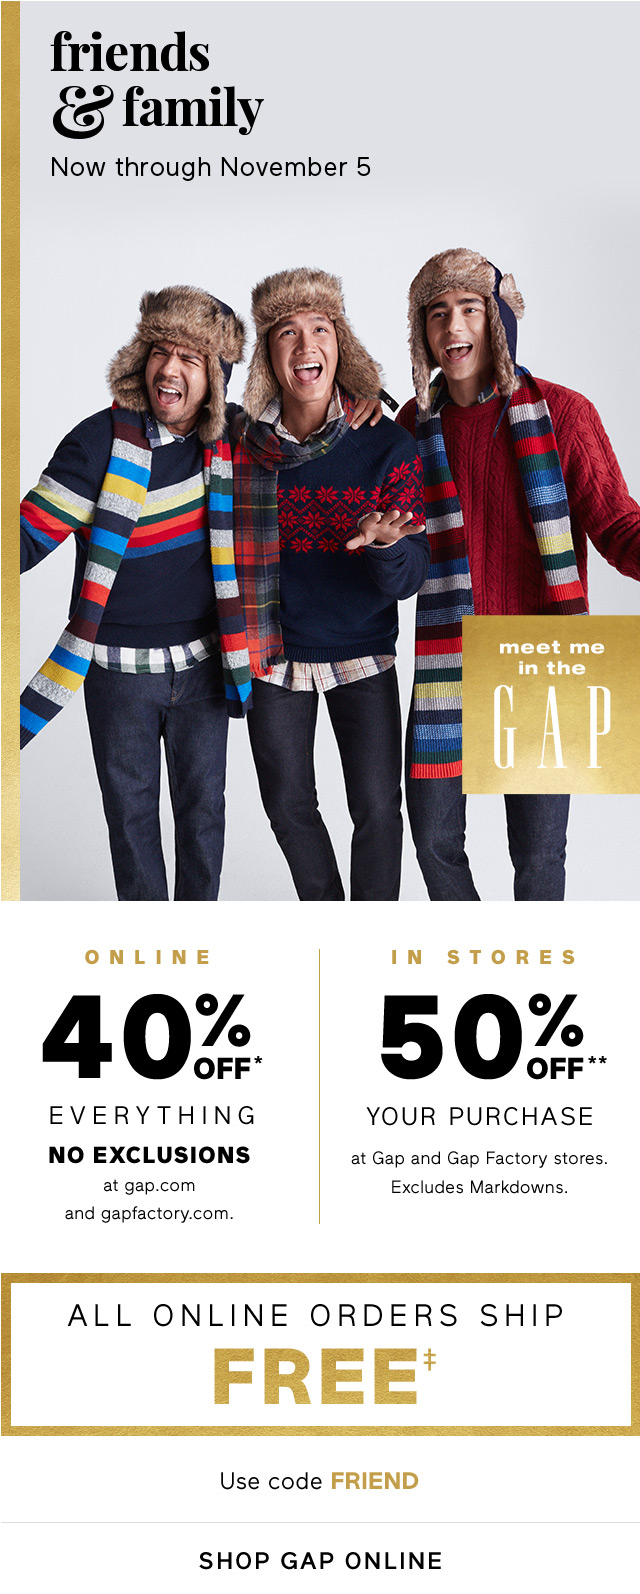 friends & family | SHOP GAP ONLINE